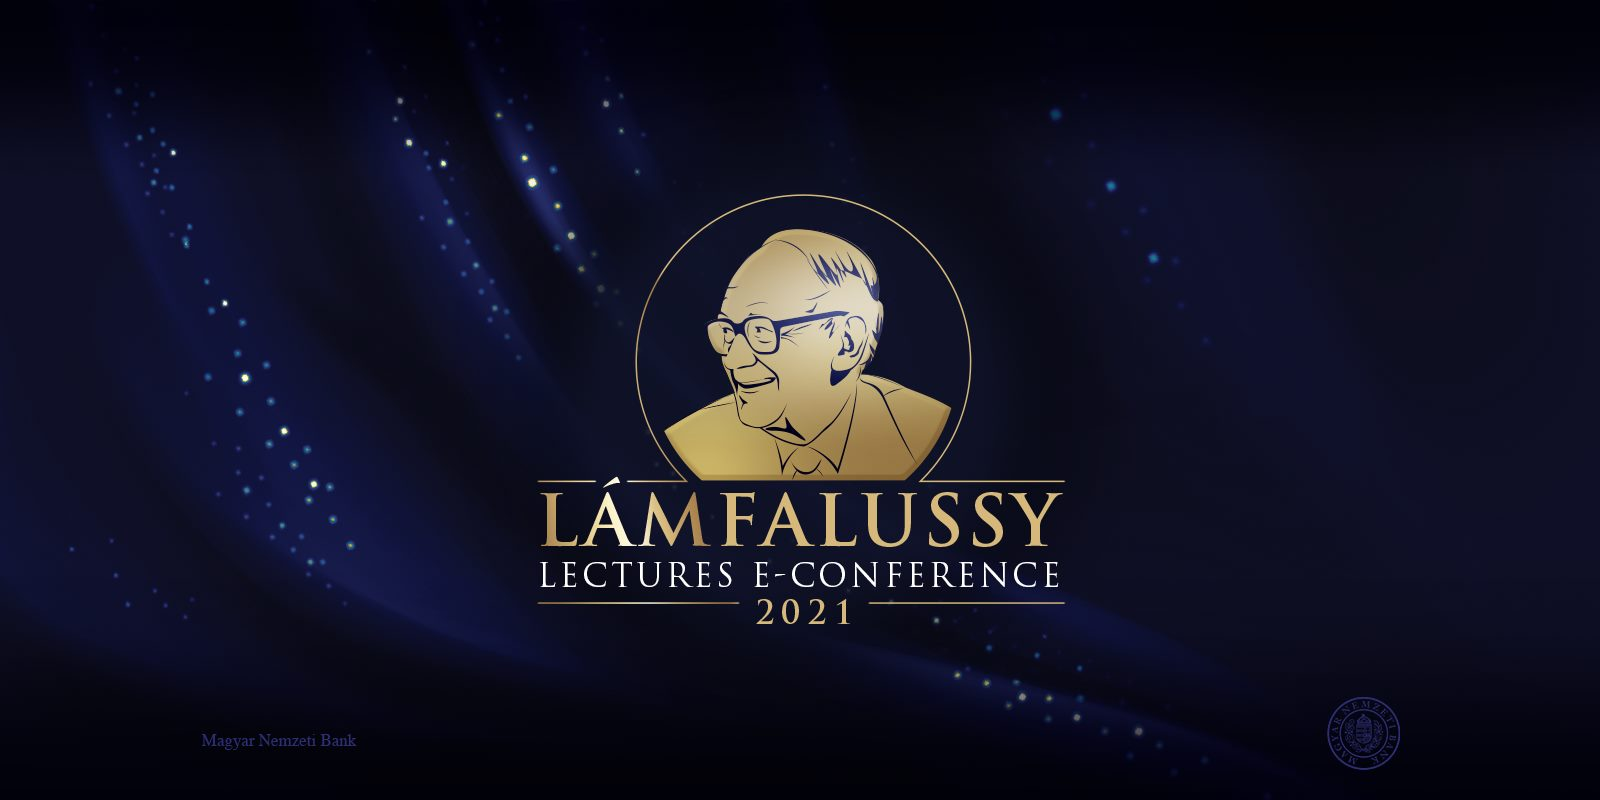 Future Of Monetary Policy After Covid-19: Lámfalussy Lectures Conference 2021